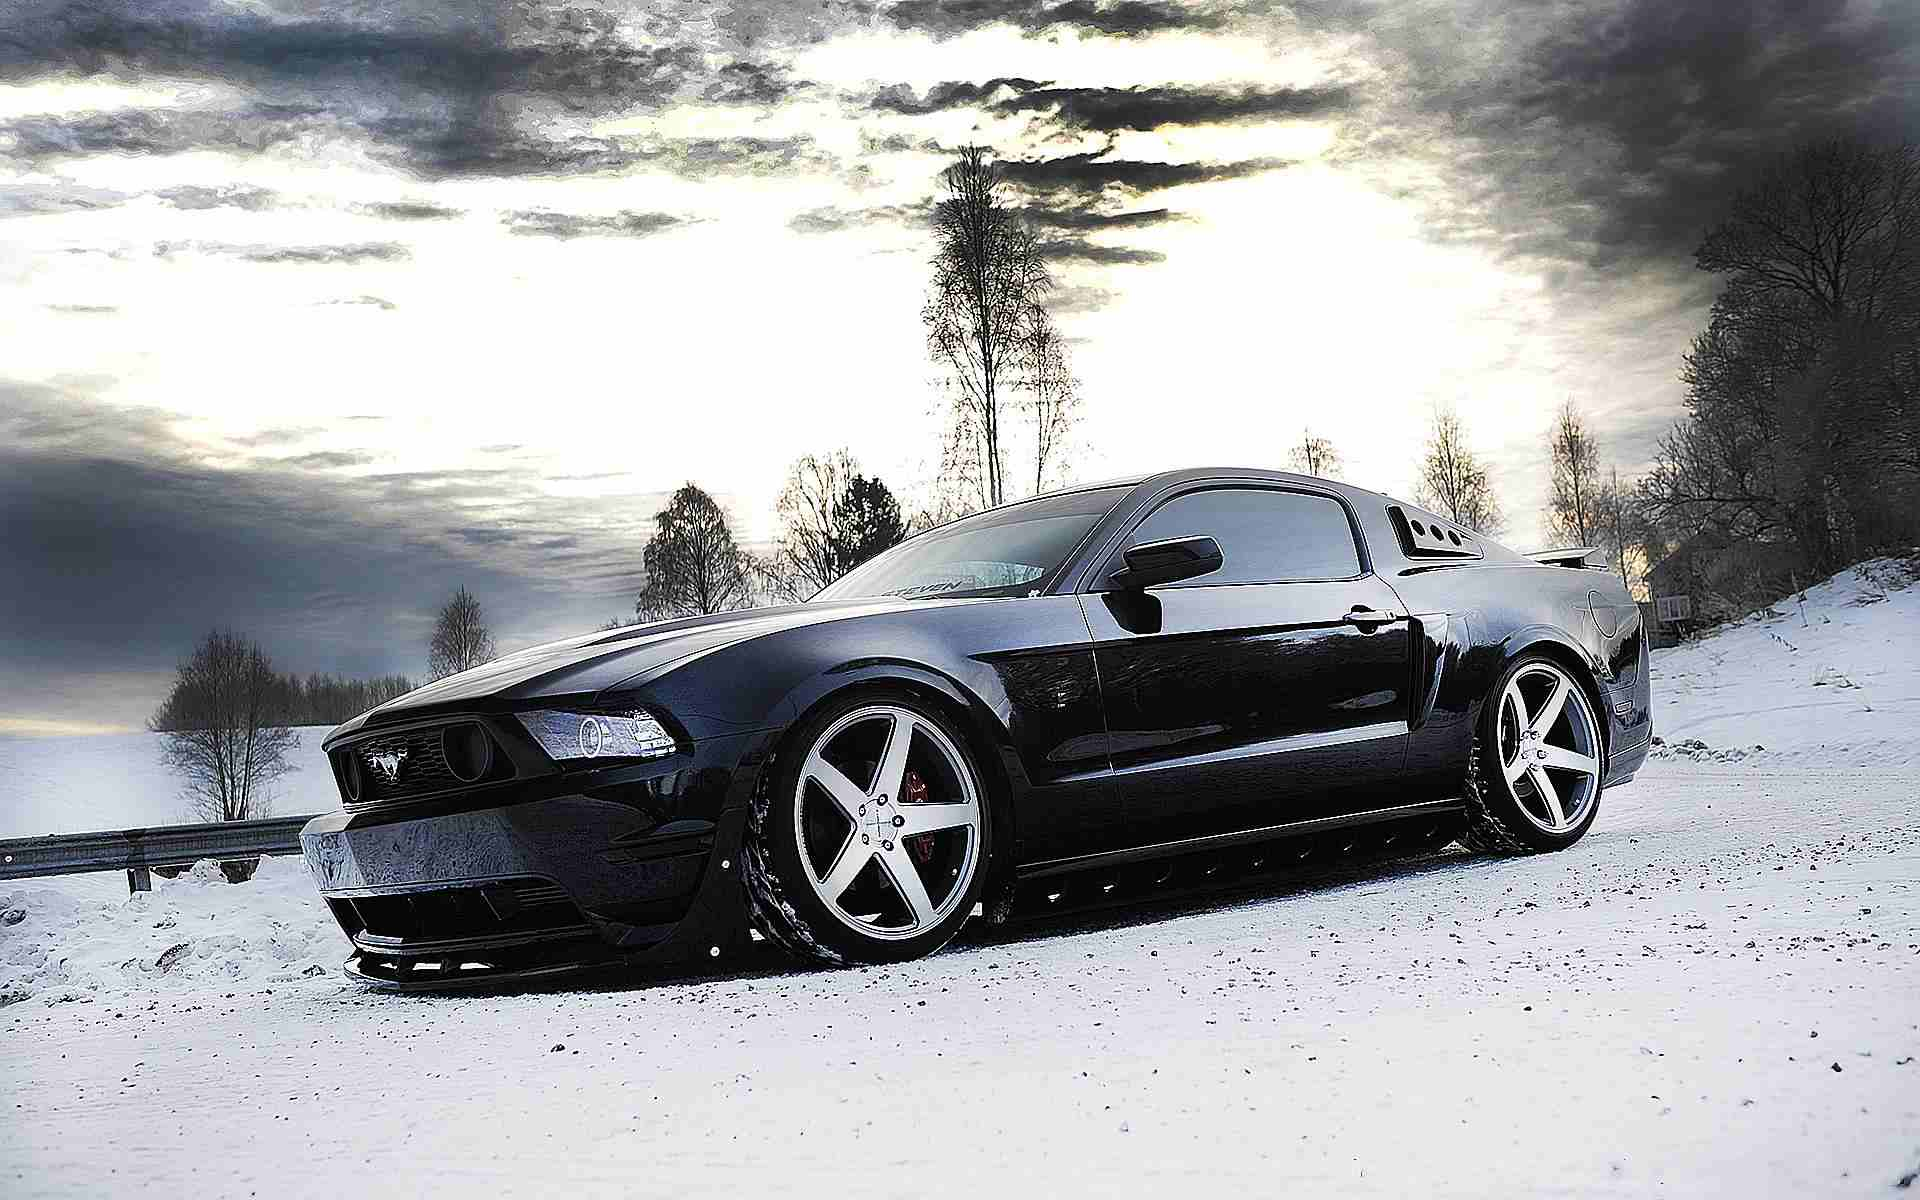 How to Prepare Your Mustang for Winter Driving